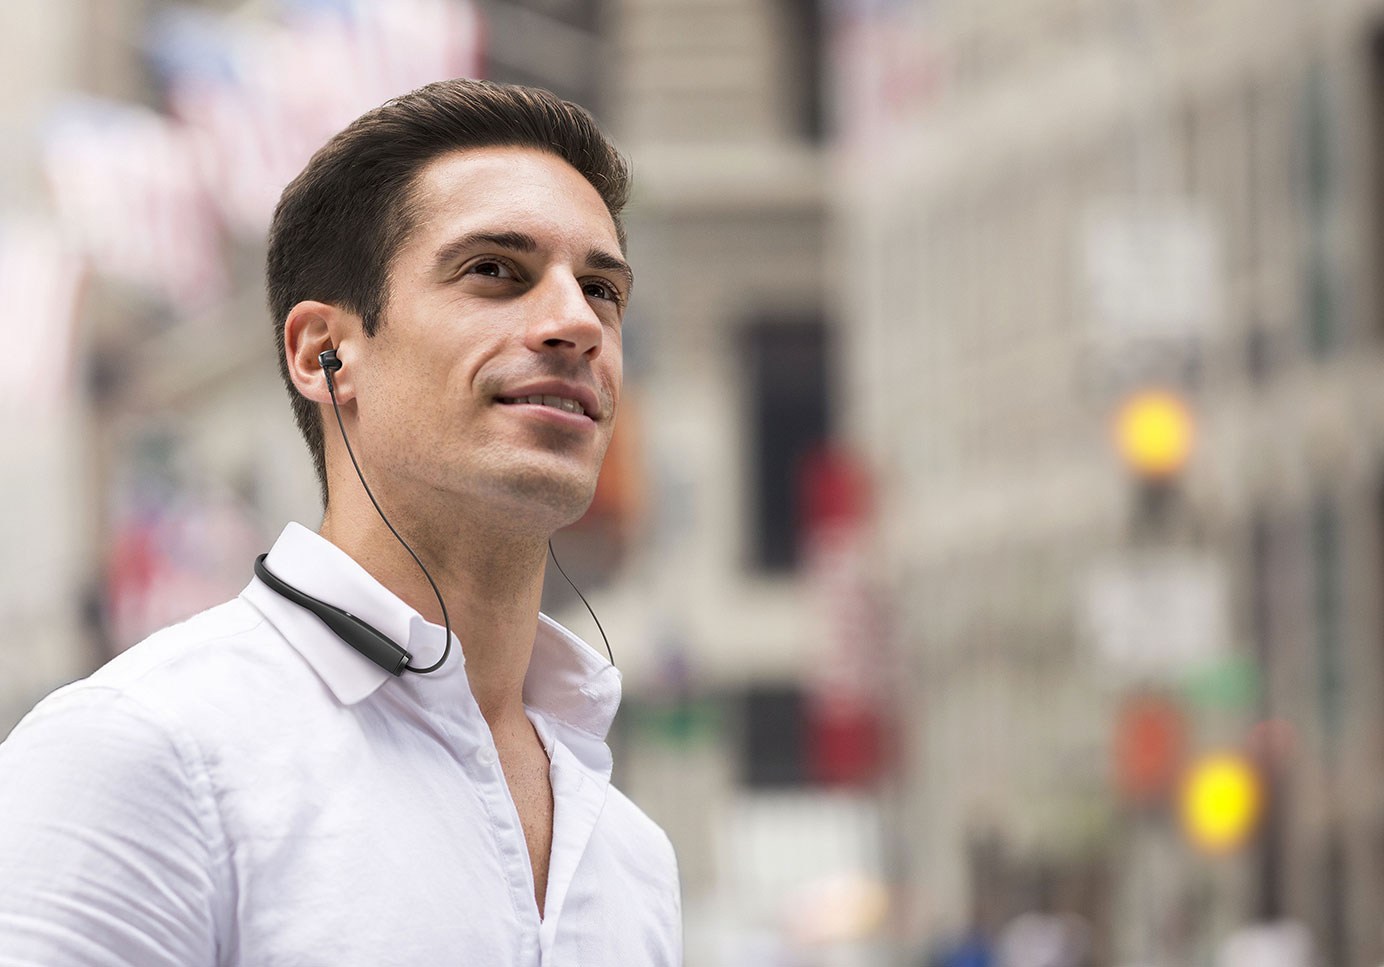 Casque intra-auriculaire sans fil Philips SHB5950 - IFA 2016